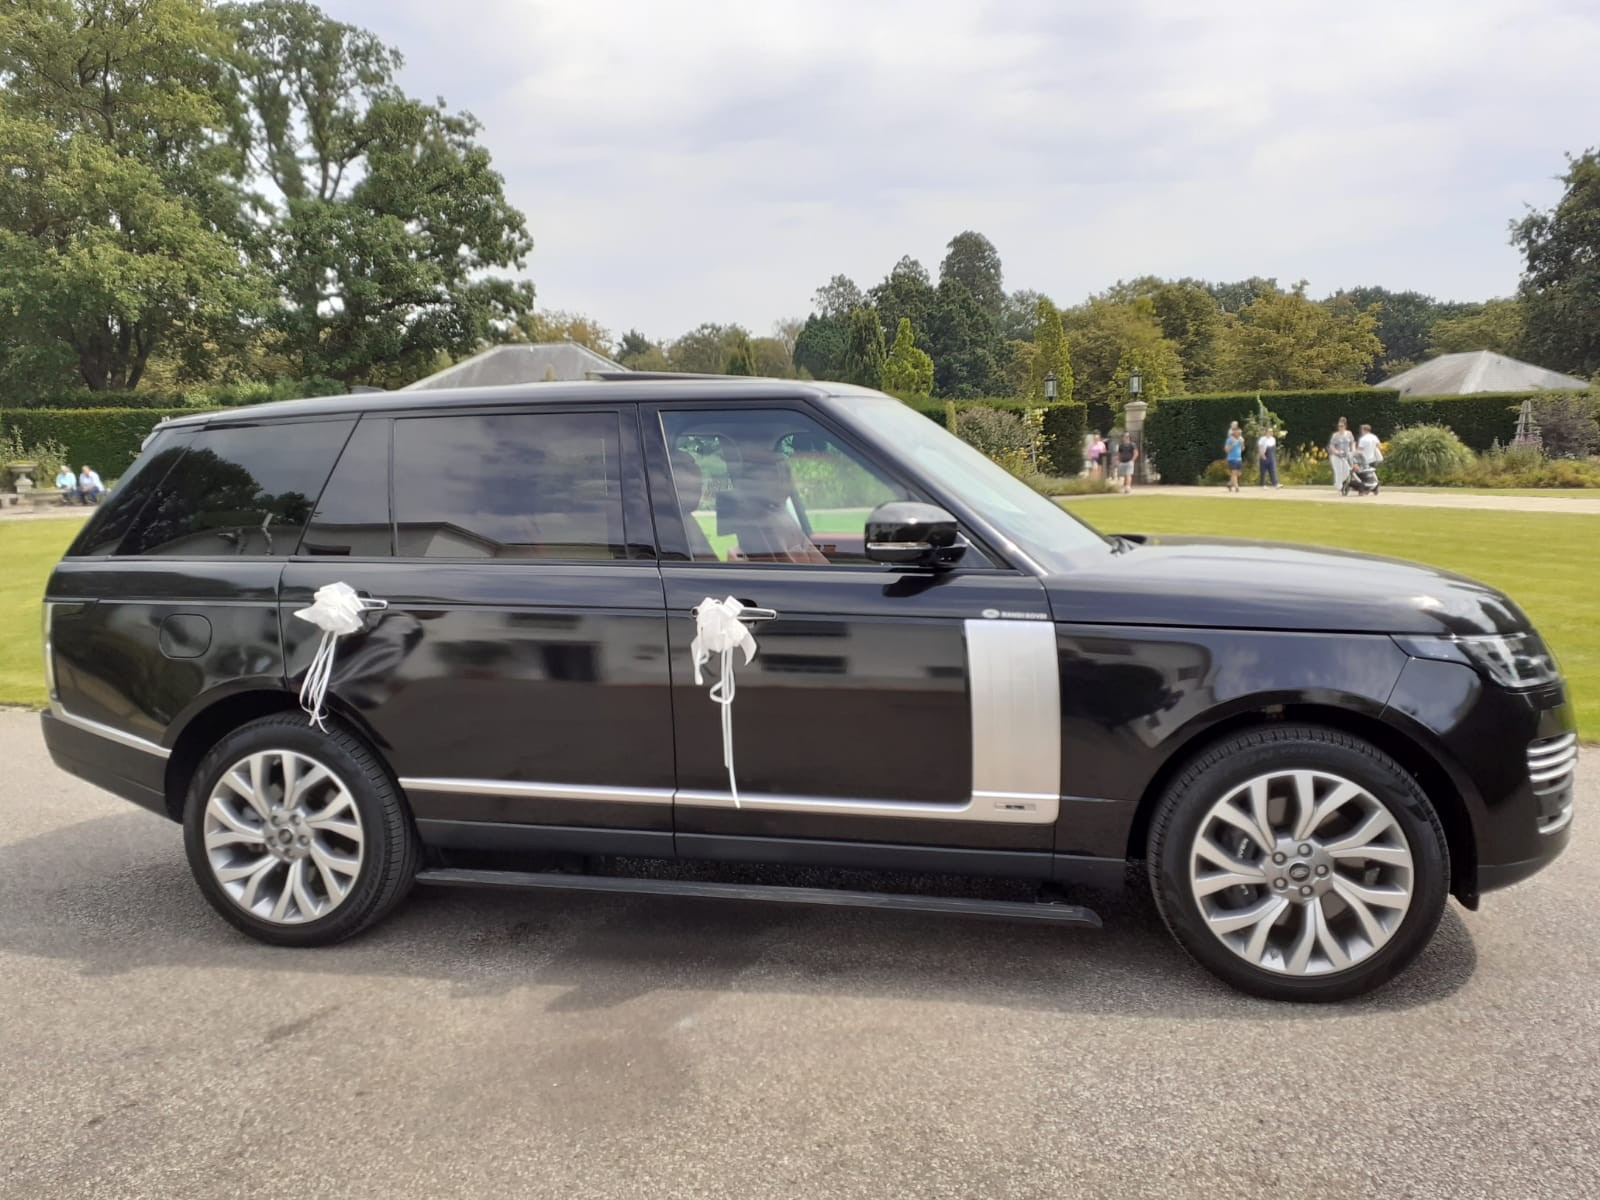 range-rover-wedding-car